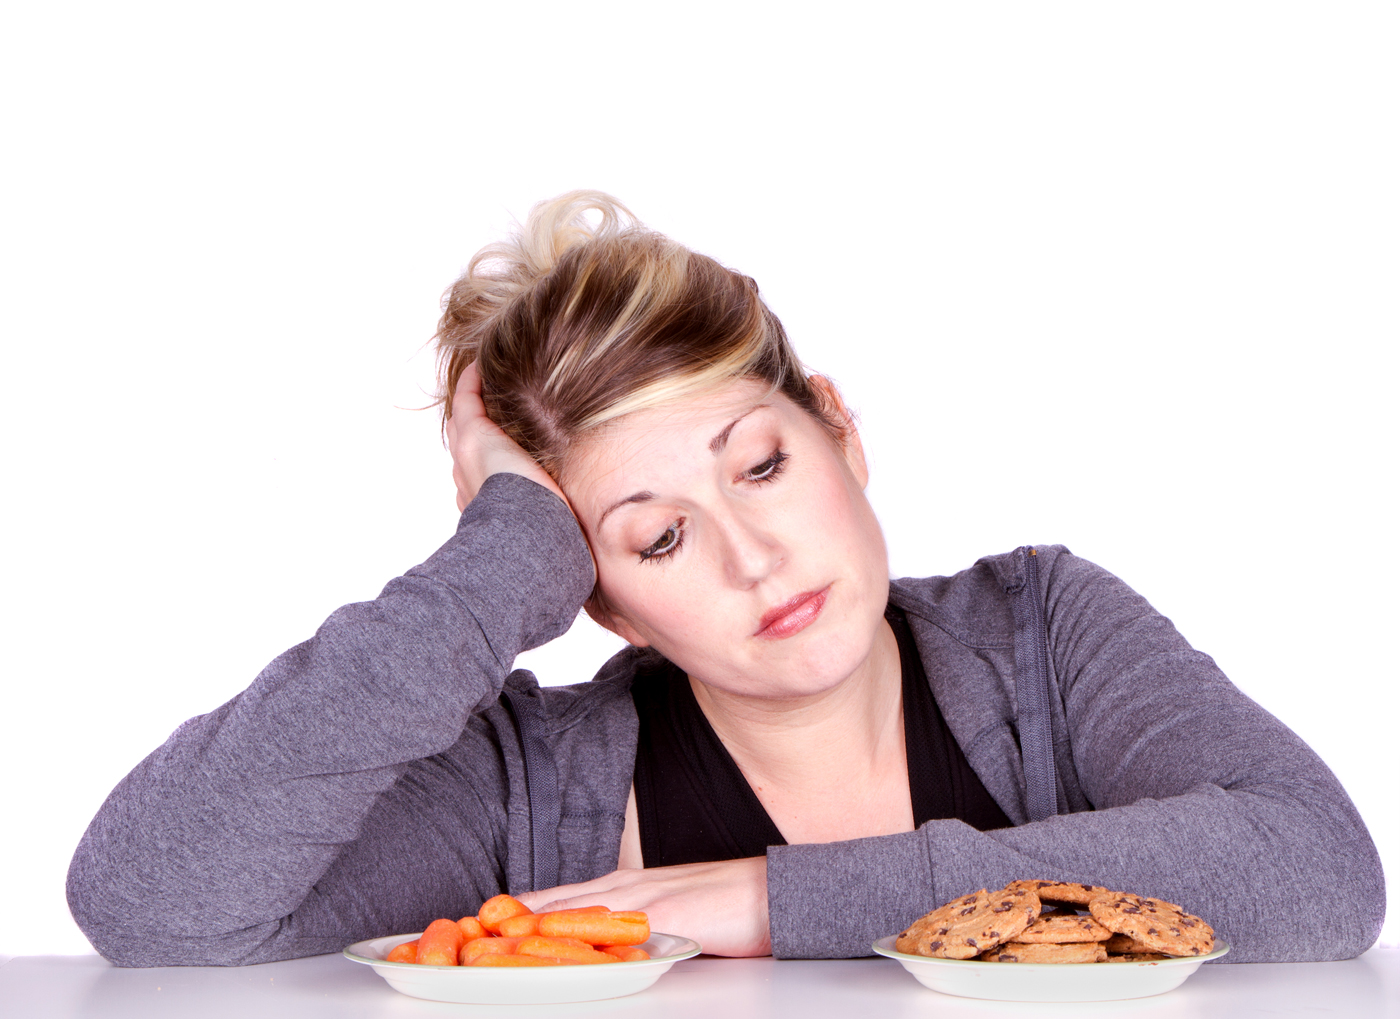 woman chooses between cookies and carrots